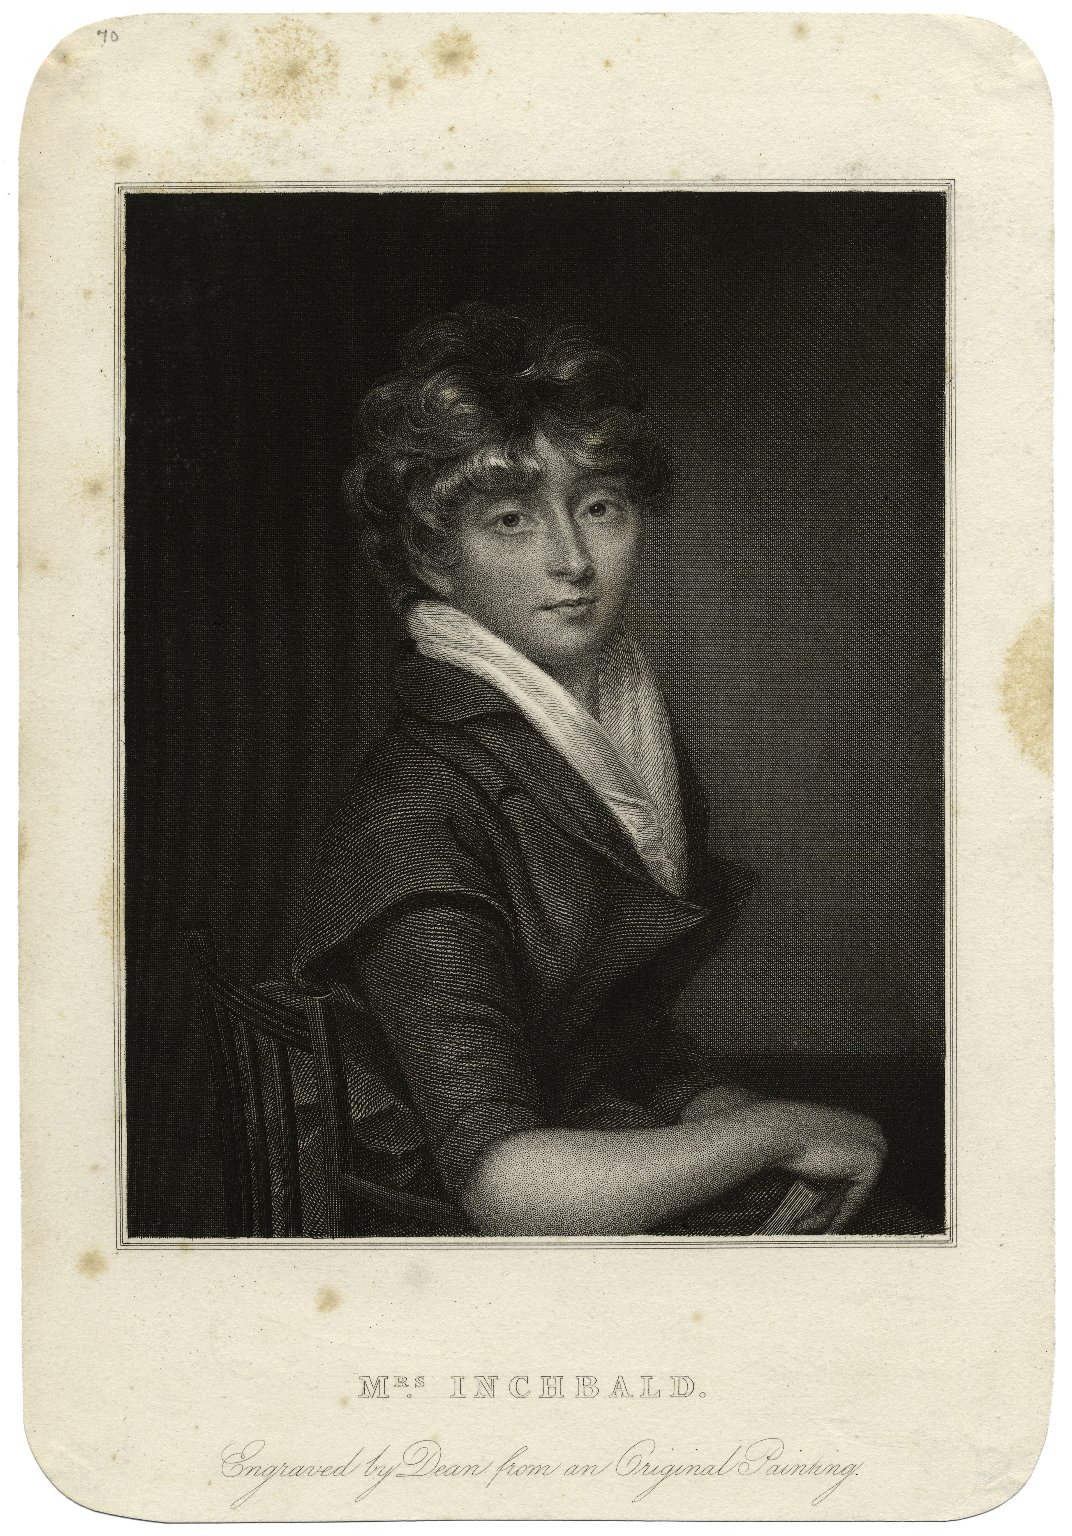 Mrs. Inchbald [graphic] / engraved by Dean from an original painting.